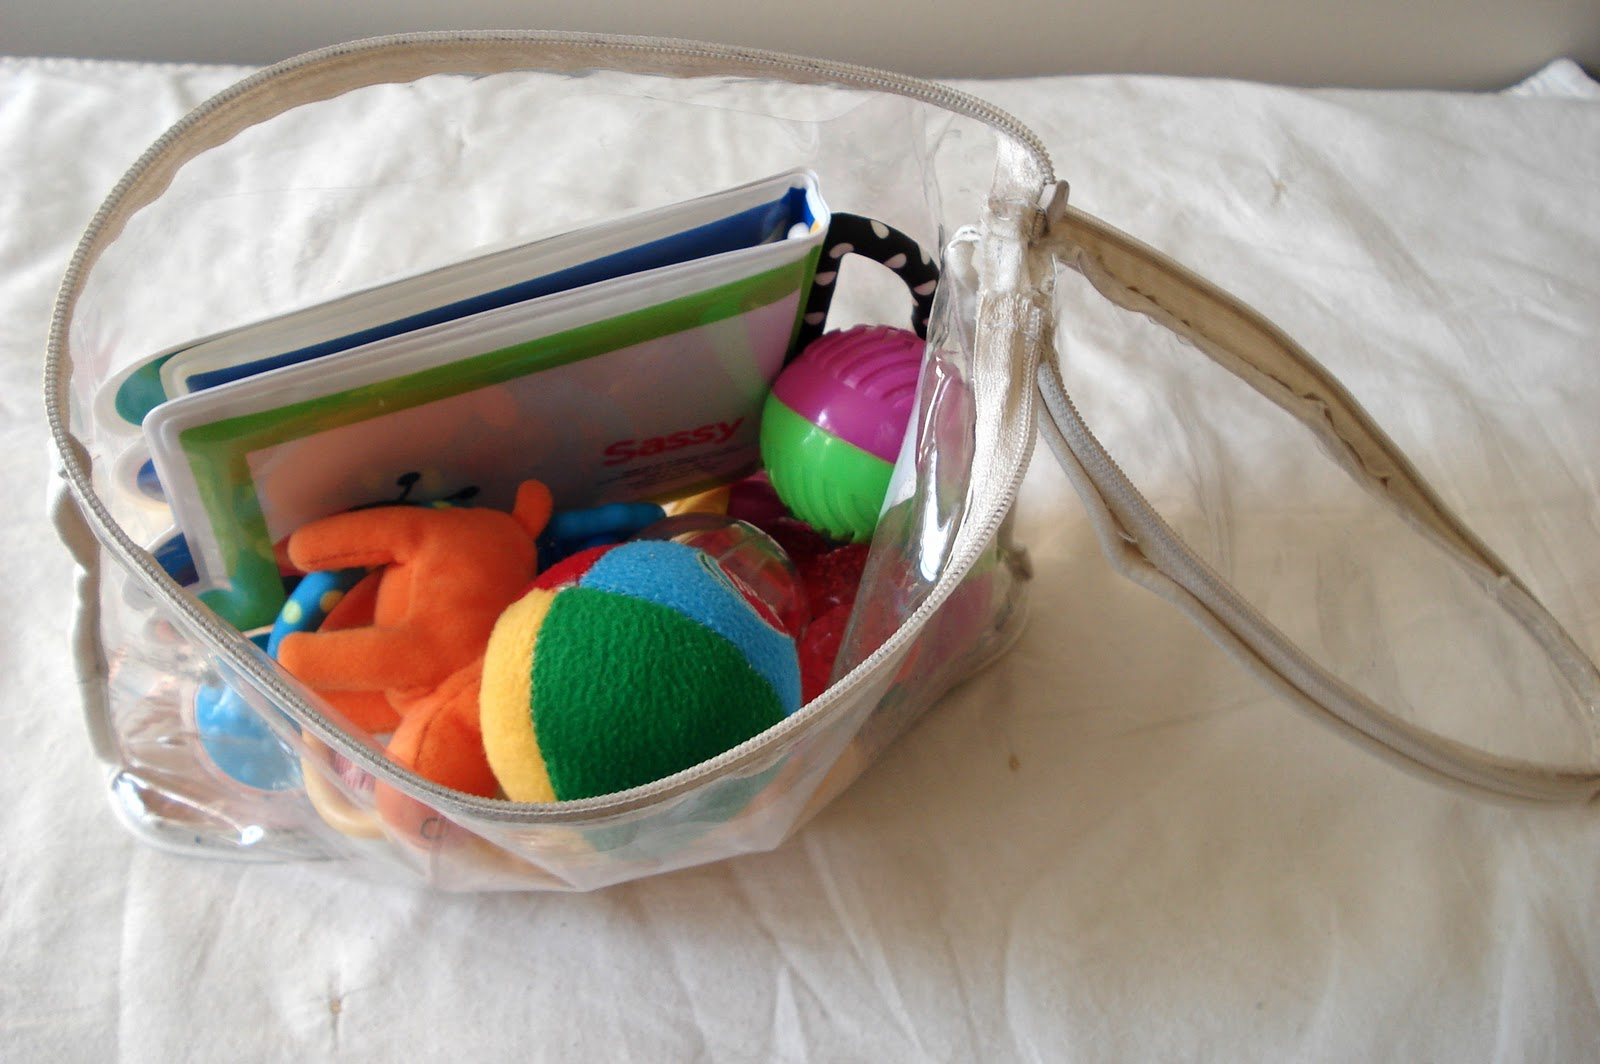 Gentil Now The Baby Toys Are Easy To Contain, Easy To See Because Of The Clear  Plastic, And All In The Same Place!